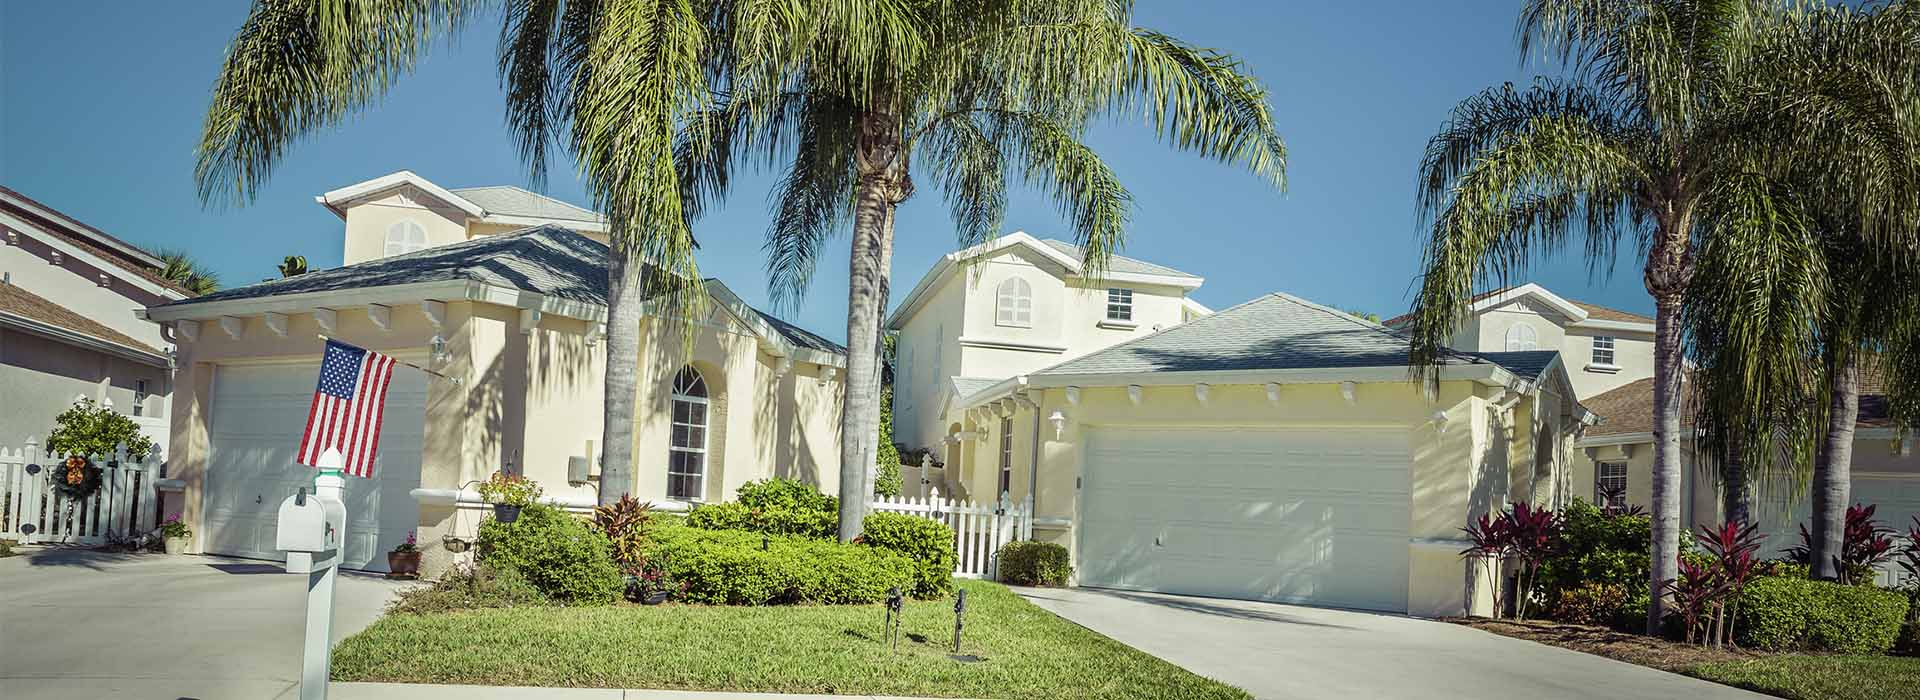 East Orlando Real Estate